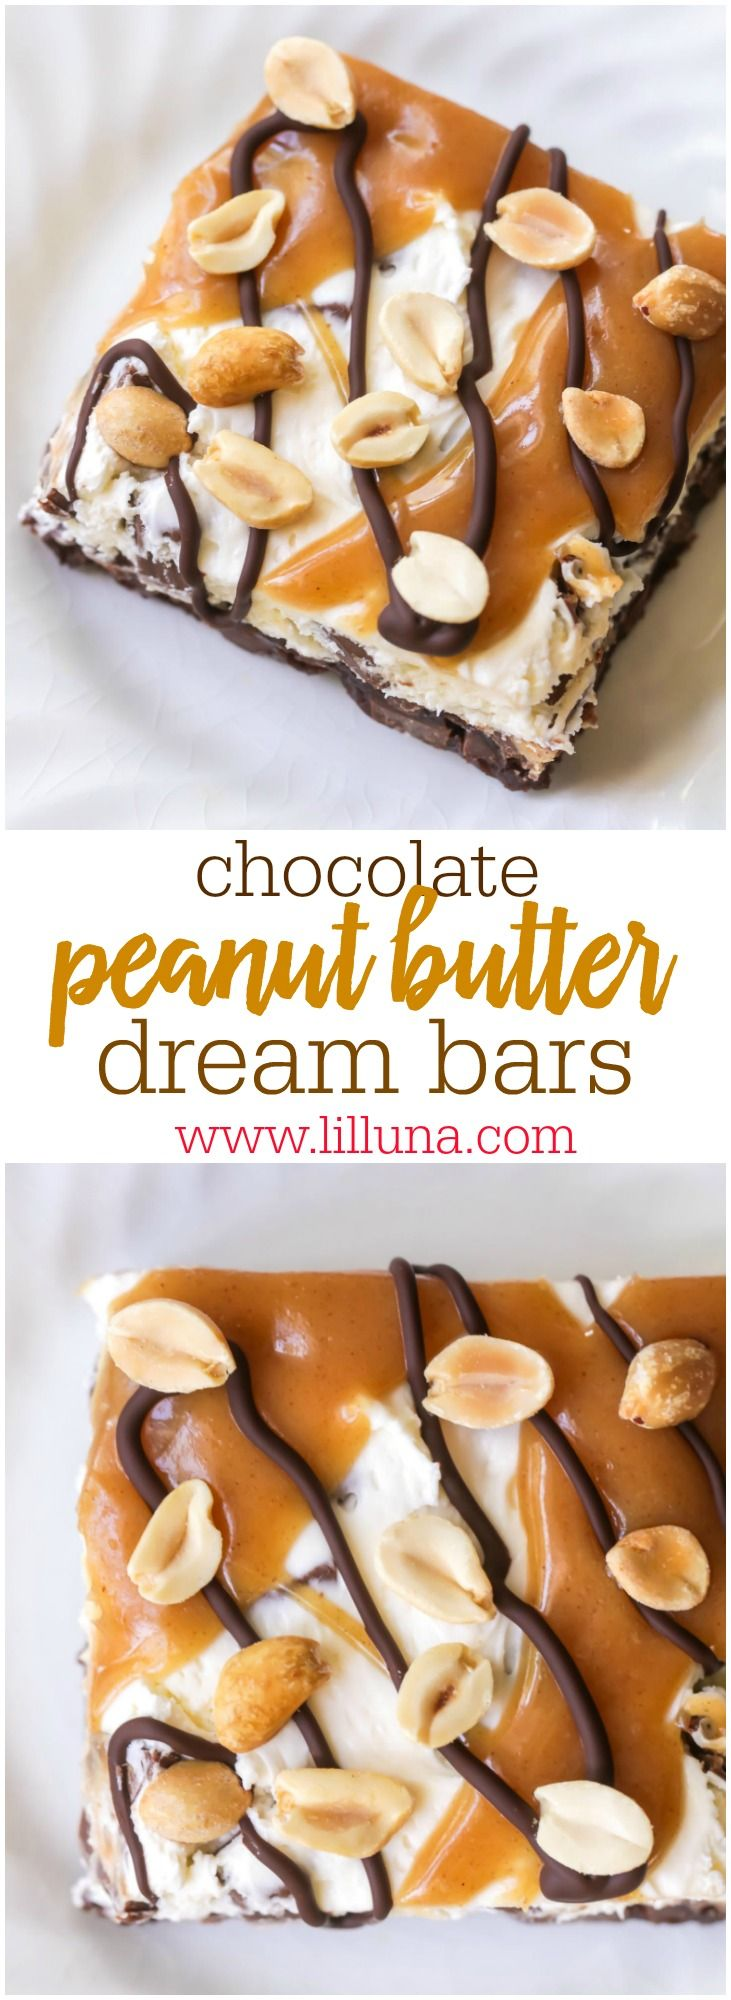 Chocolate Peanut Butter Bars - a chocolate chunk cookie base with a creamy peanut butter filling topped with chocolate and peanuts. The perfect treat for the PB + Chocolate lover!